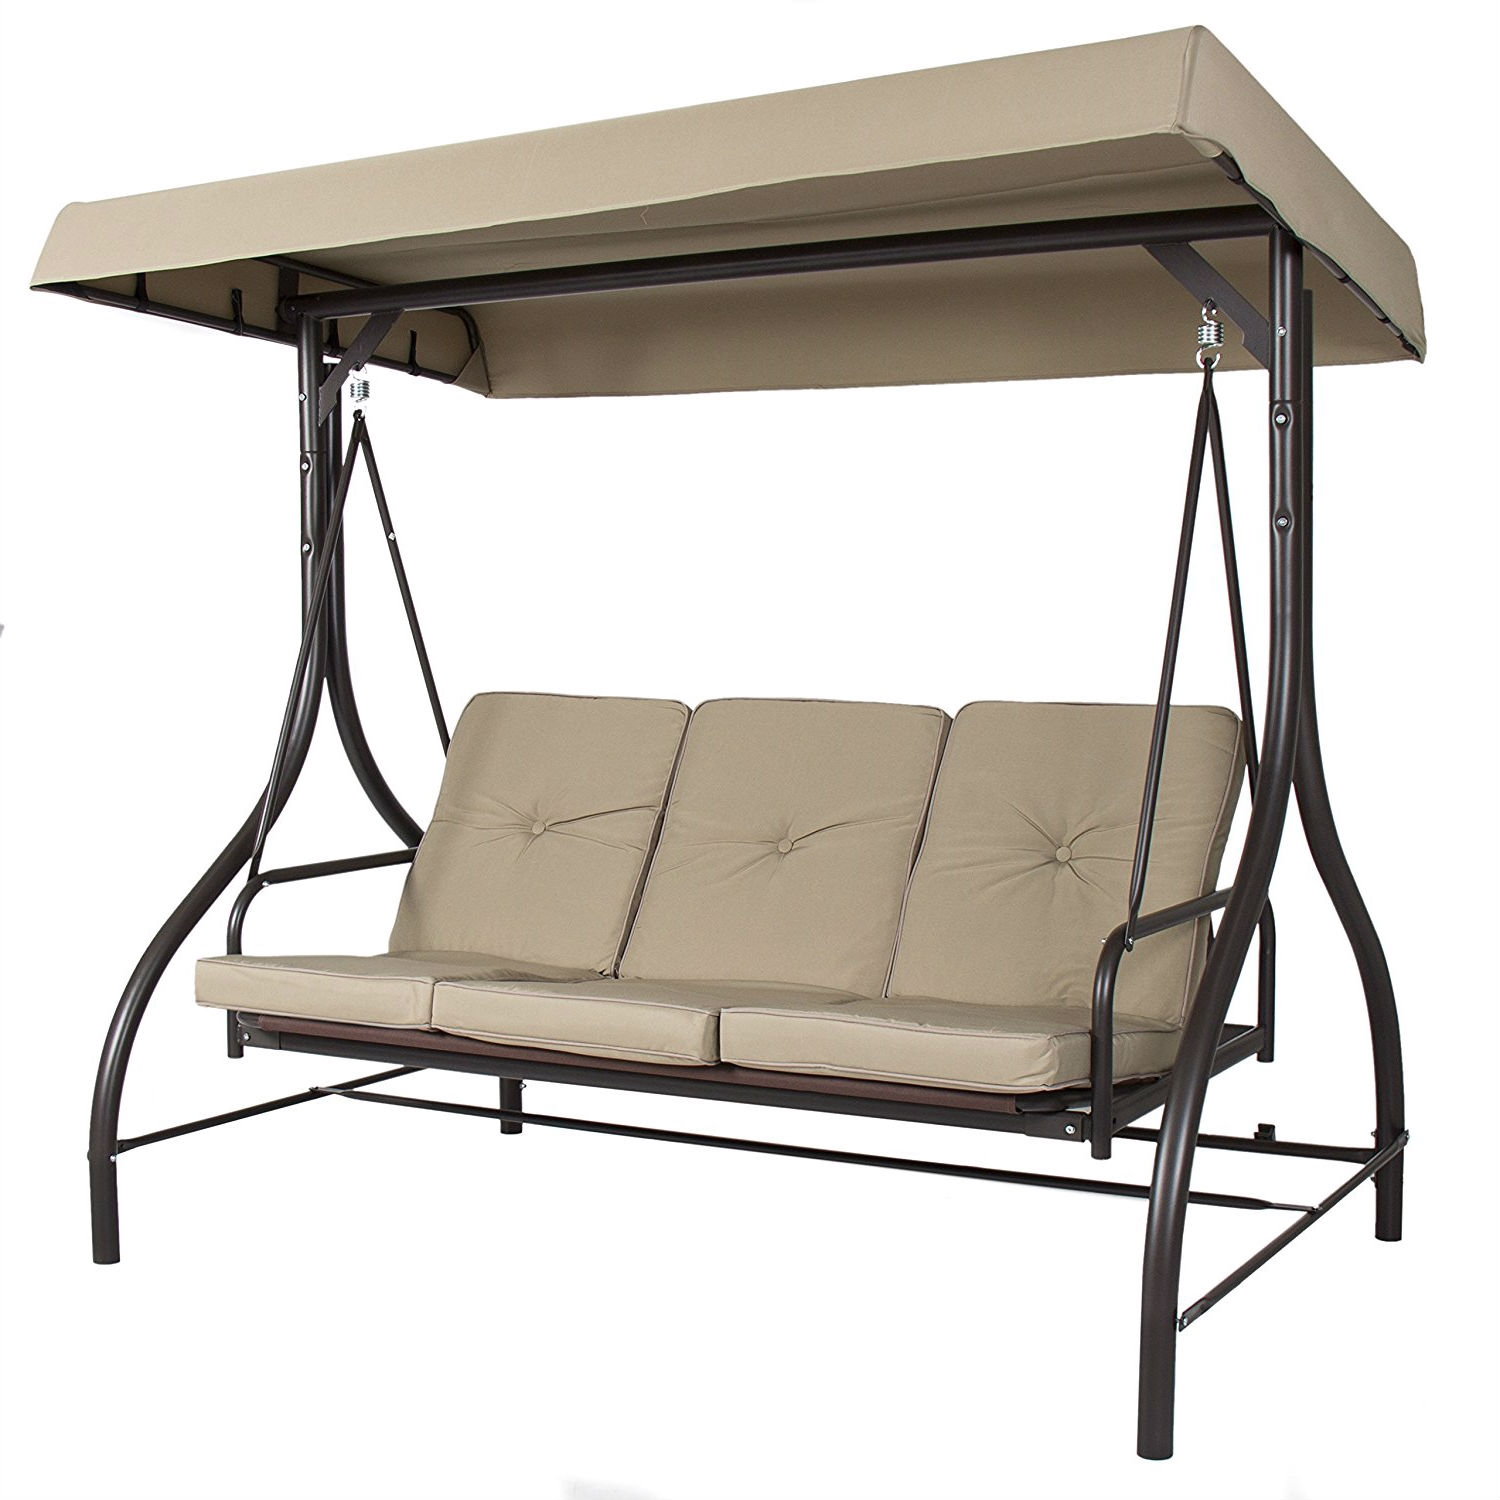 Tan 3 Seat Outdoor Porch Deck Patio Canopy Swing With Cushions Fastfurnishings